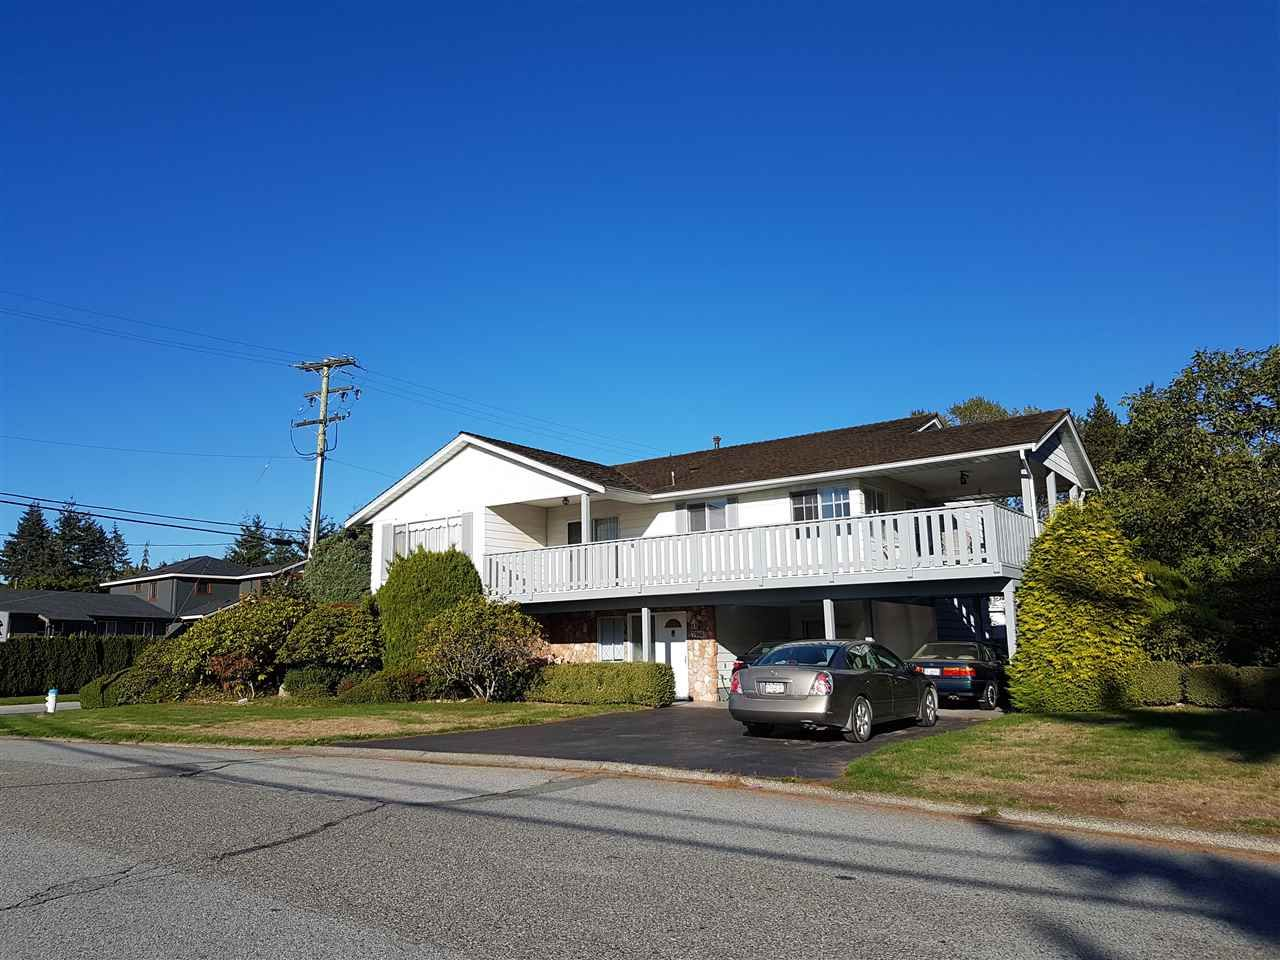 Main Photo: 7966 Wiltshire Boulevard in Delta: Nordel House for sale (N. Delta)  : MLS®# R2212600